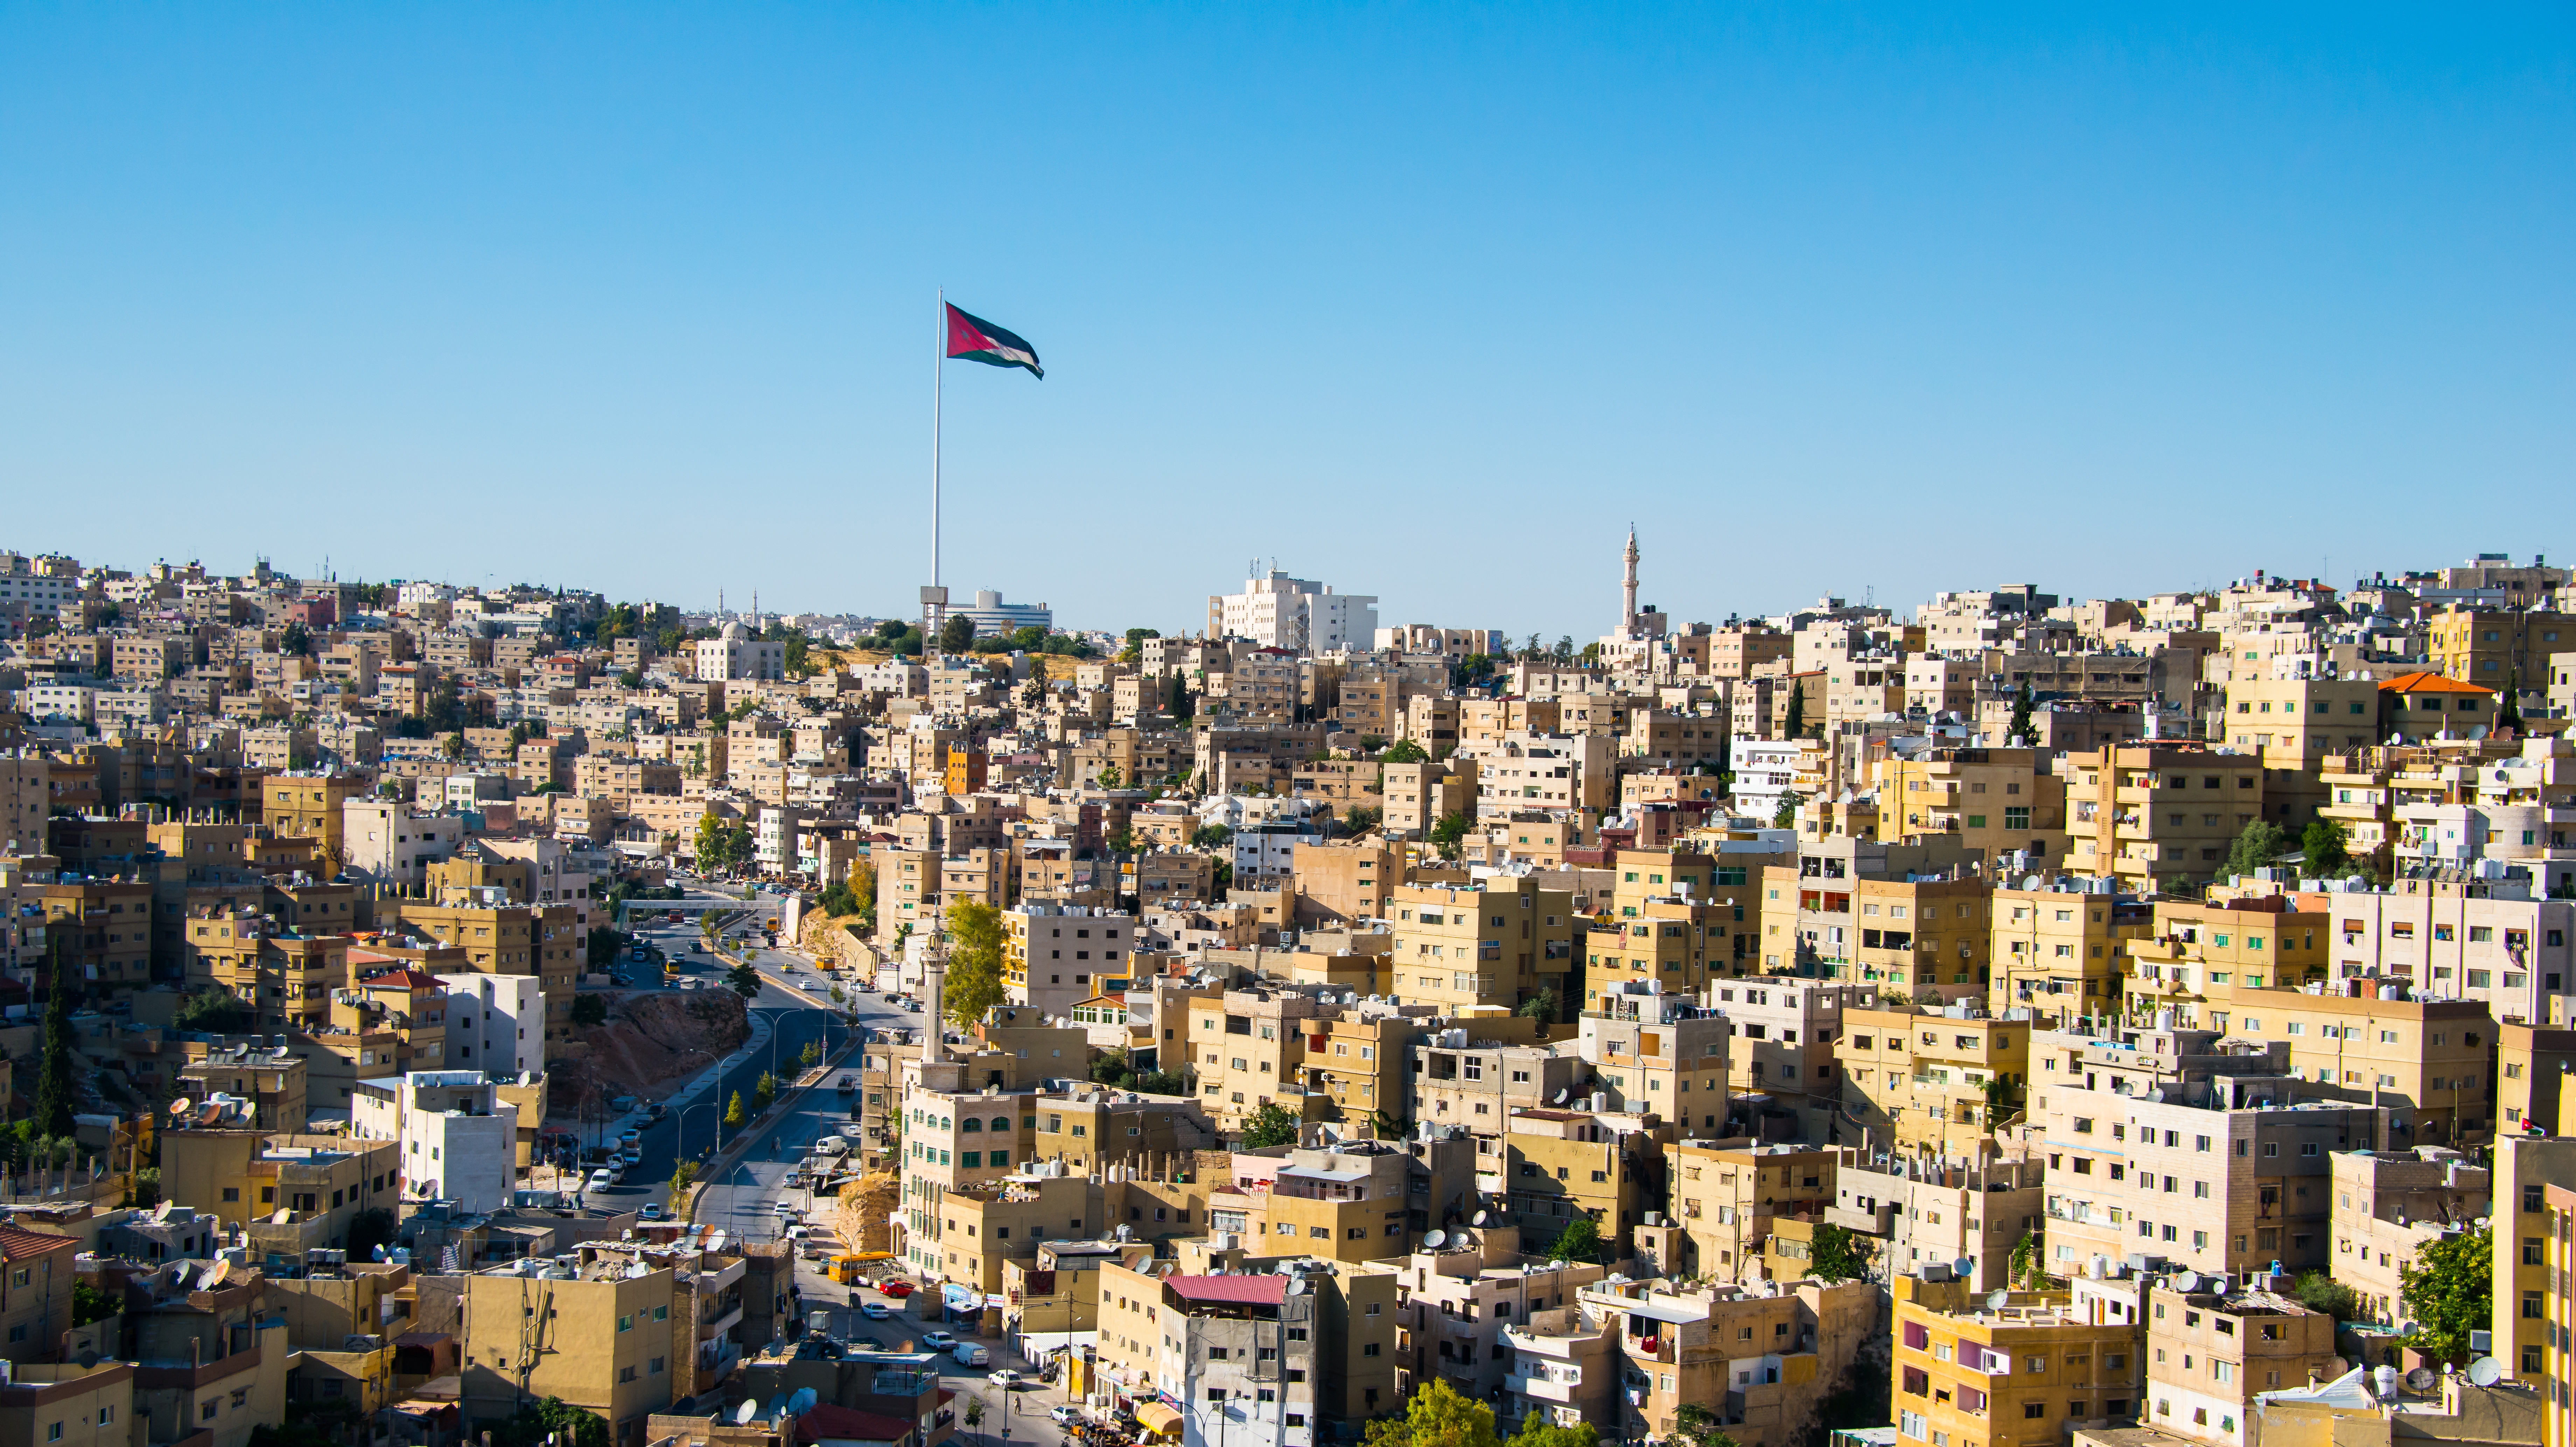 Jordan Economic Monitor: persisting forward despite challenges